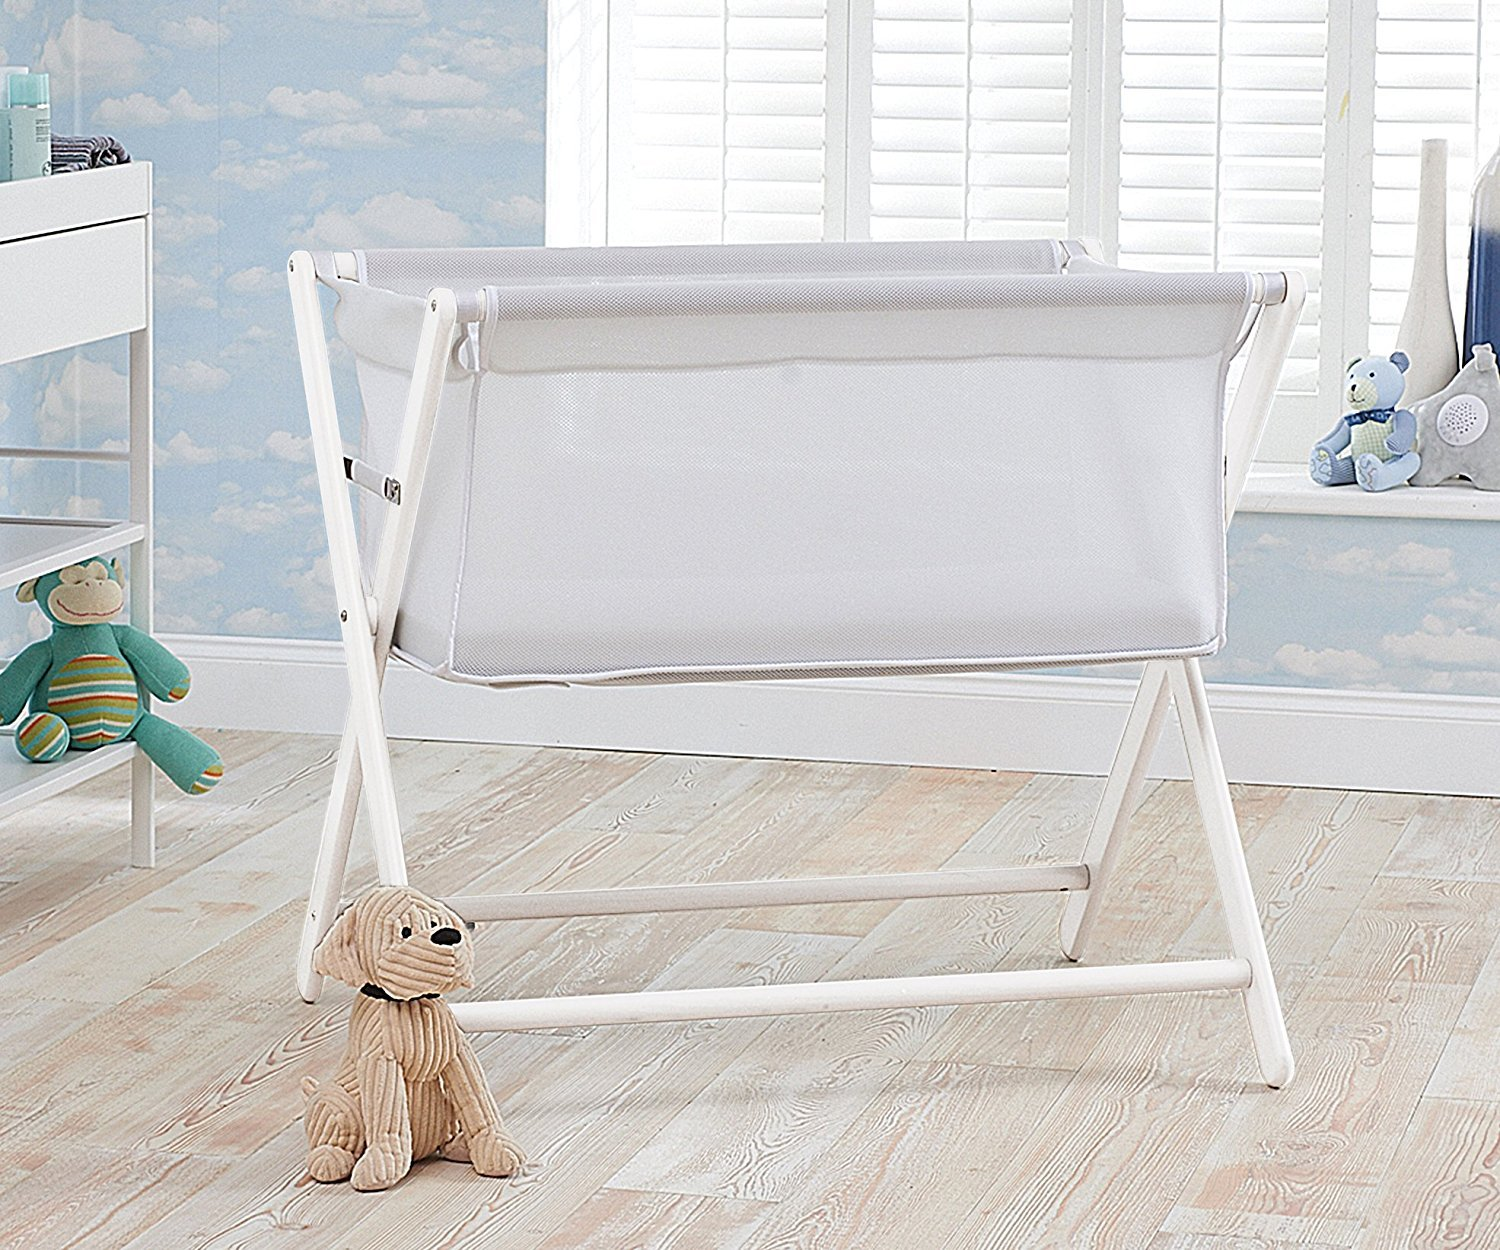 Little Chick London Breathable Bedside Crib - Cool White